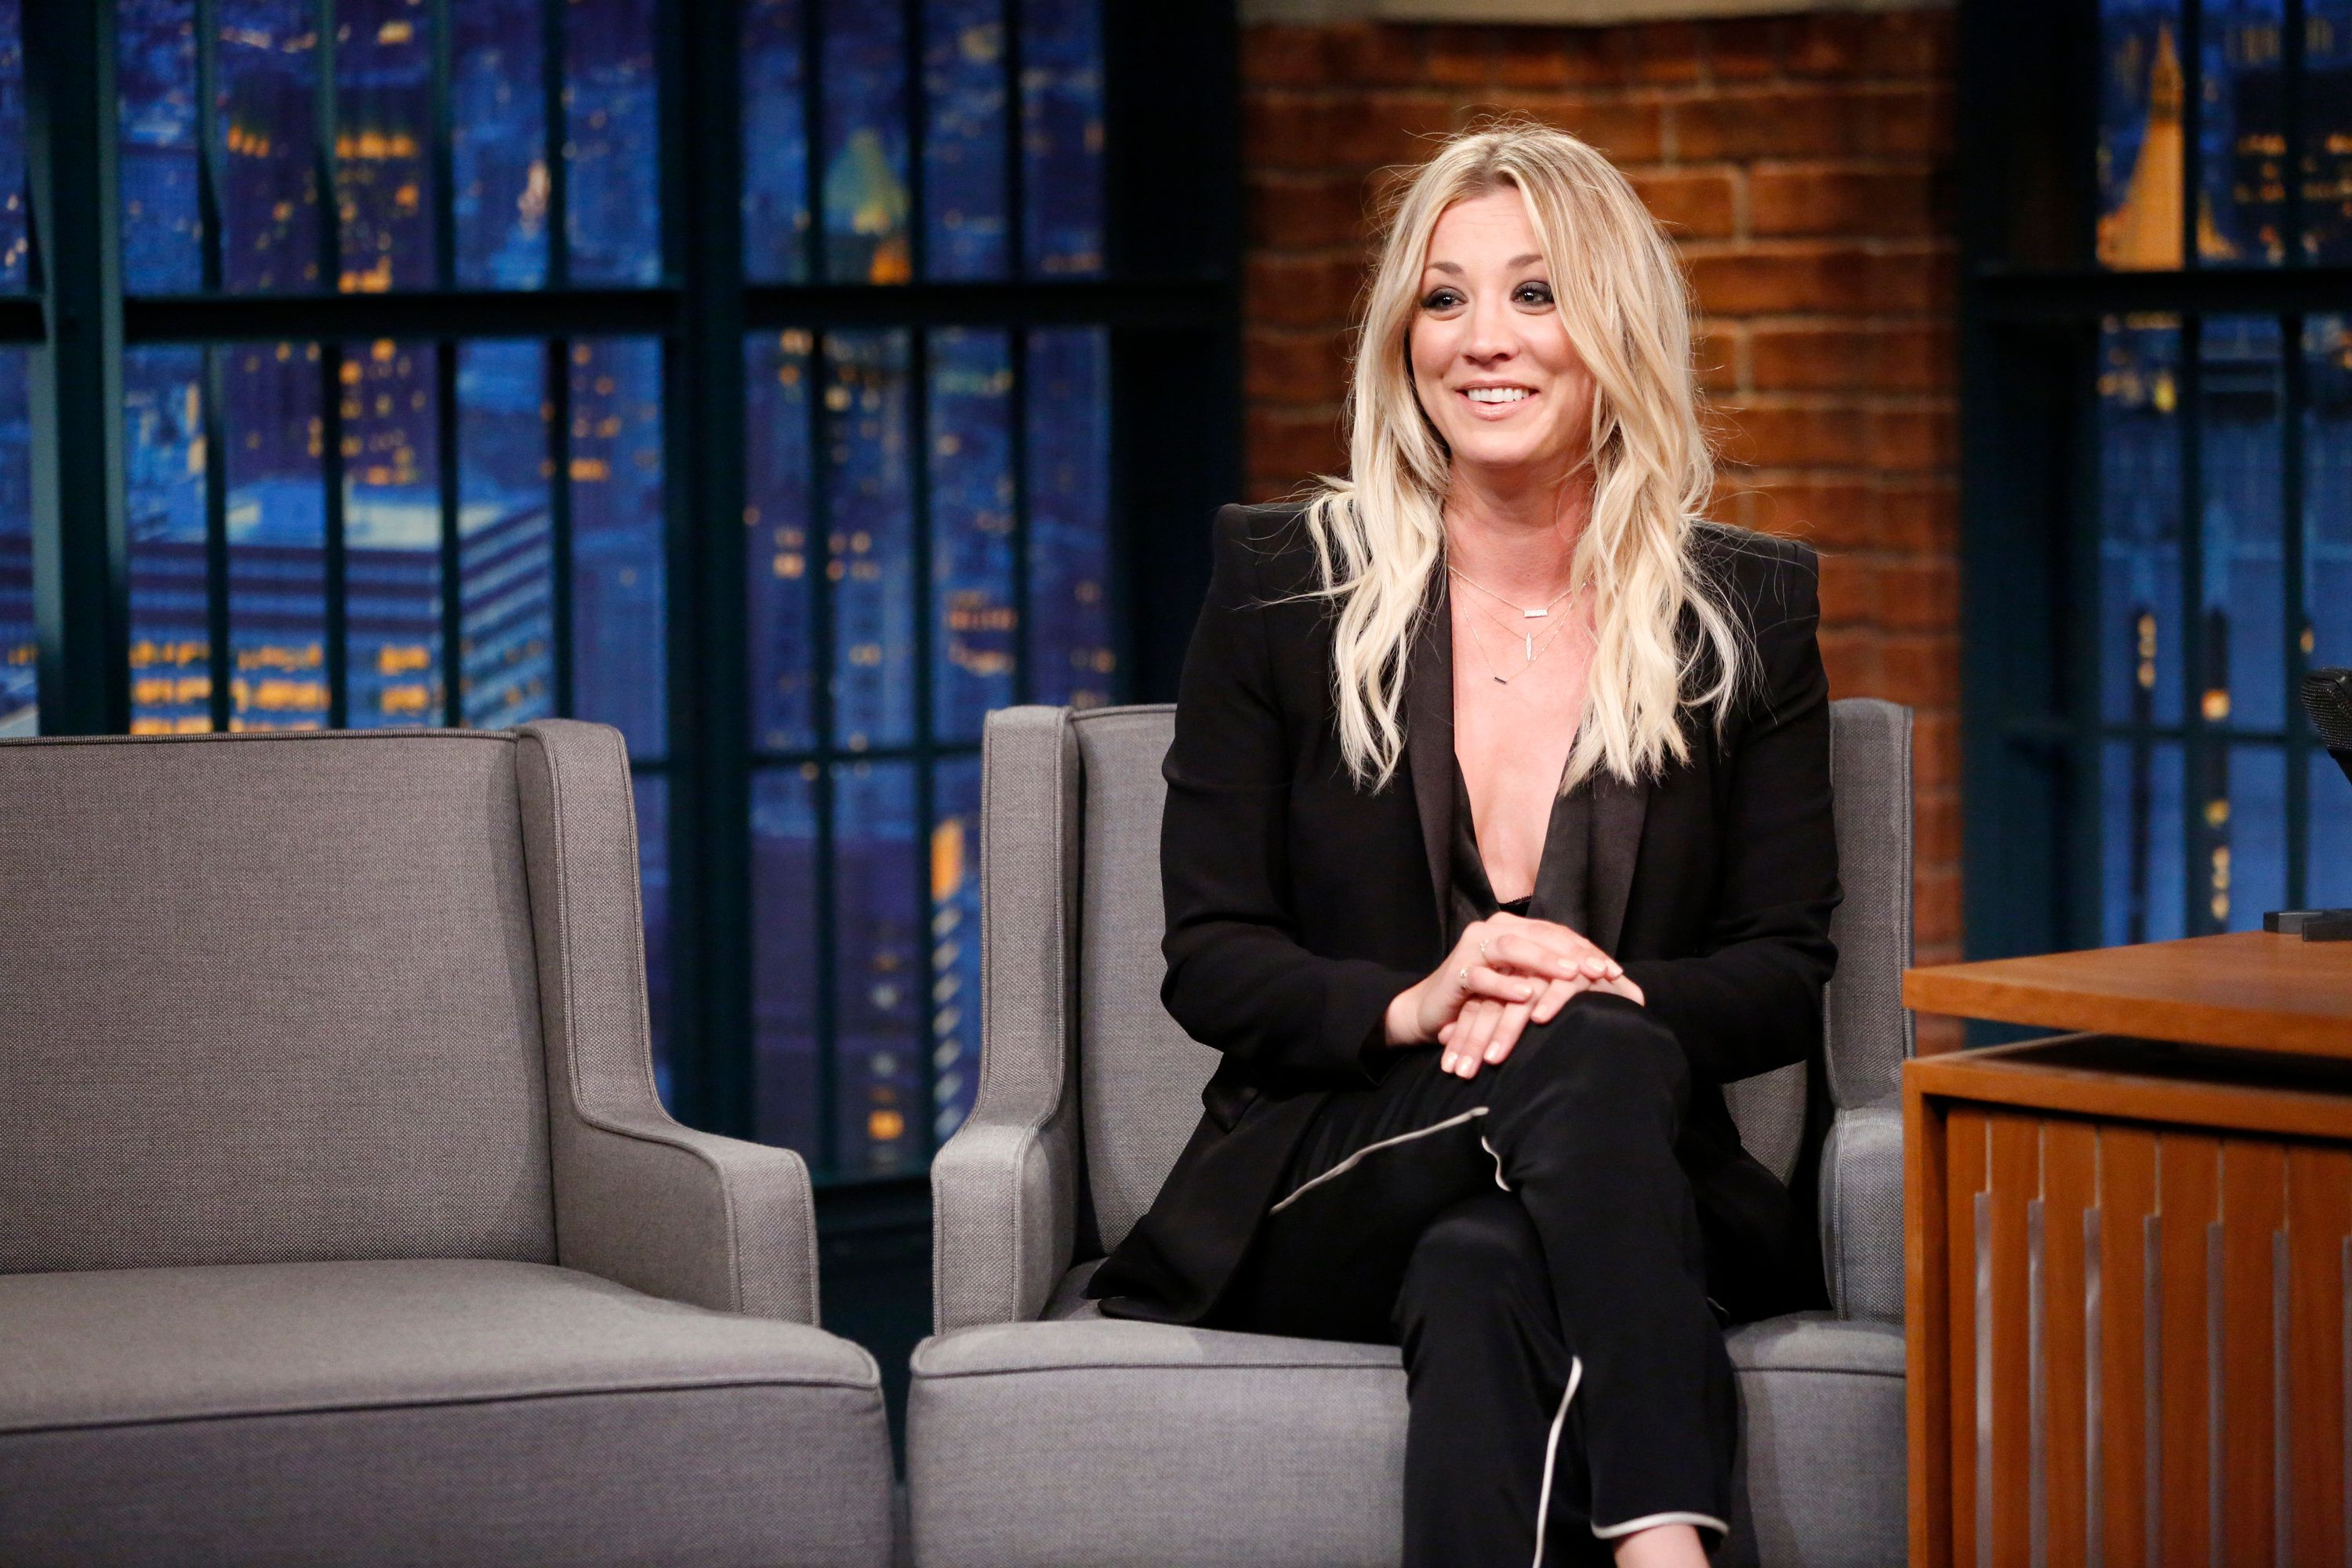 LATE NIGHT WITH SETH MEYERS -- Episode 367 -- Pictured: Actress Kaley Cuoco during an interview on May 10, 2016 -- (Photo by: Lloyd Bishop/NBC/NBCU Photo Bank via Getty Images)